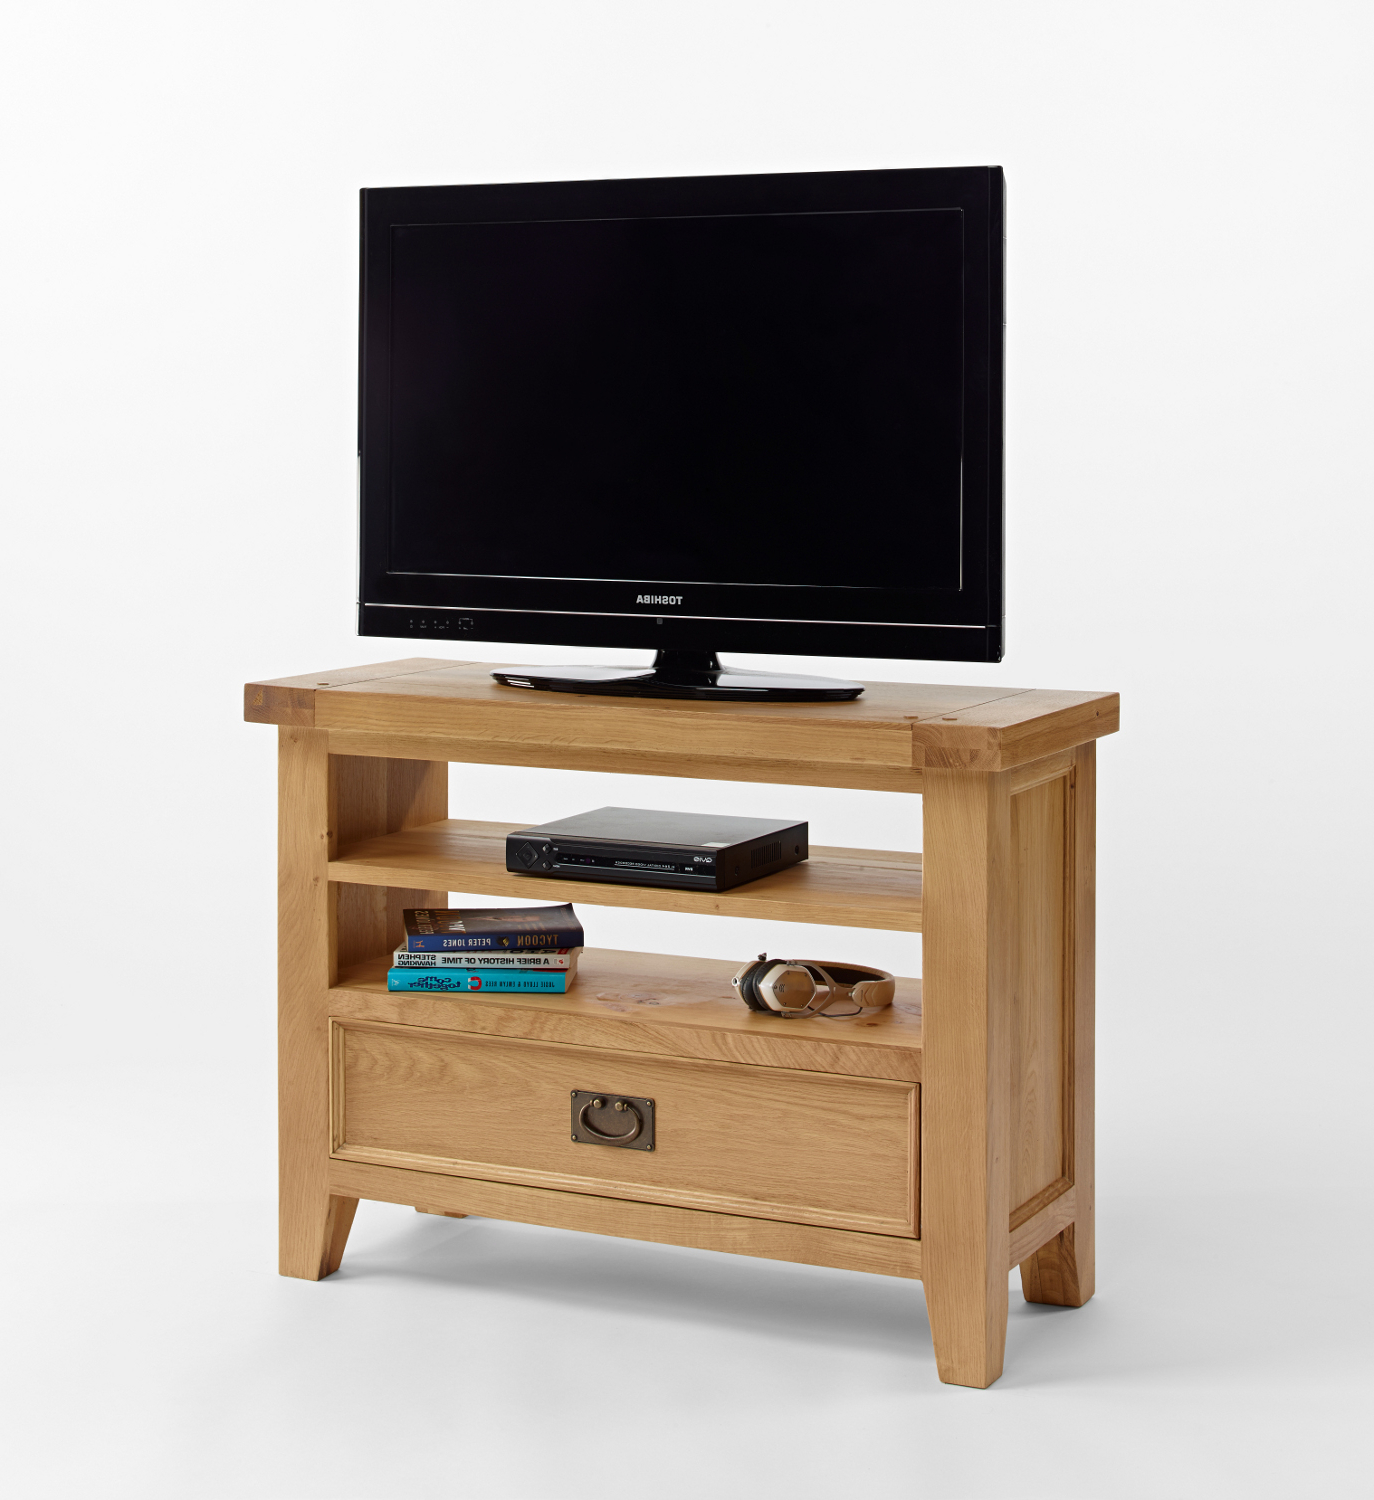 Small Oak Tv Cabinets Inside Latest Oak Tv Units Solid Cabinets Corner Furniture Stands Trends Including (Gallery 5 of 20)